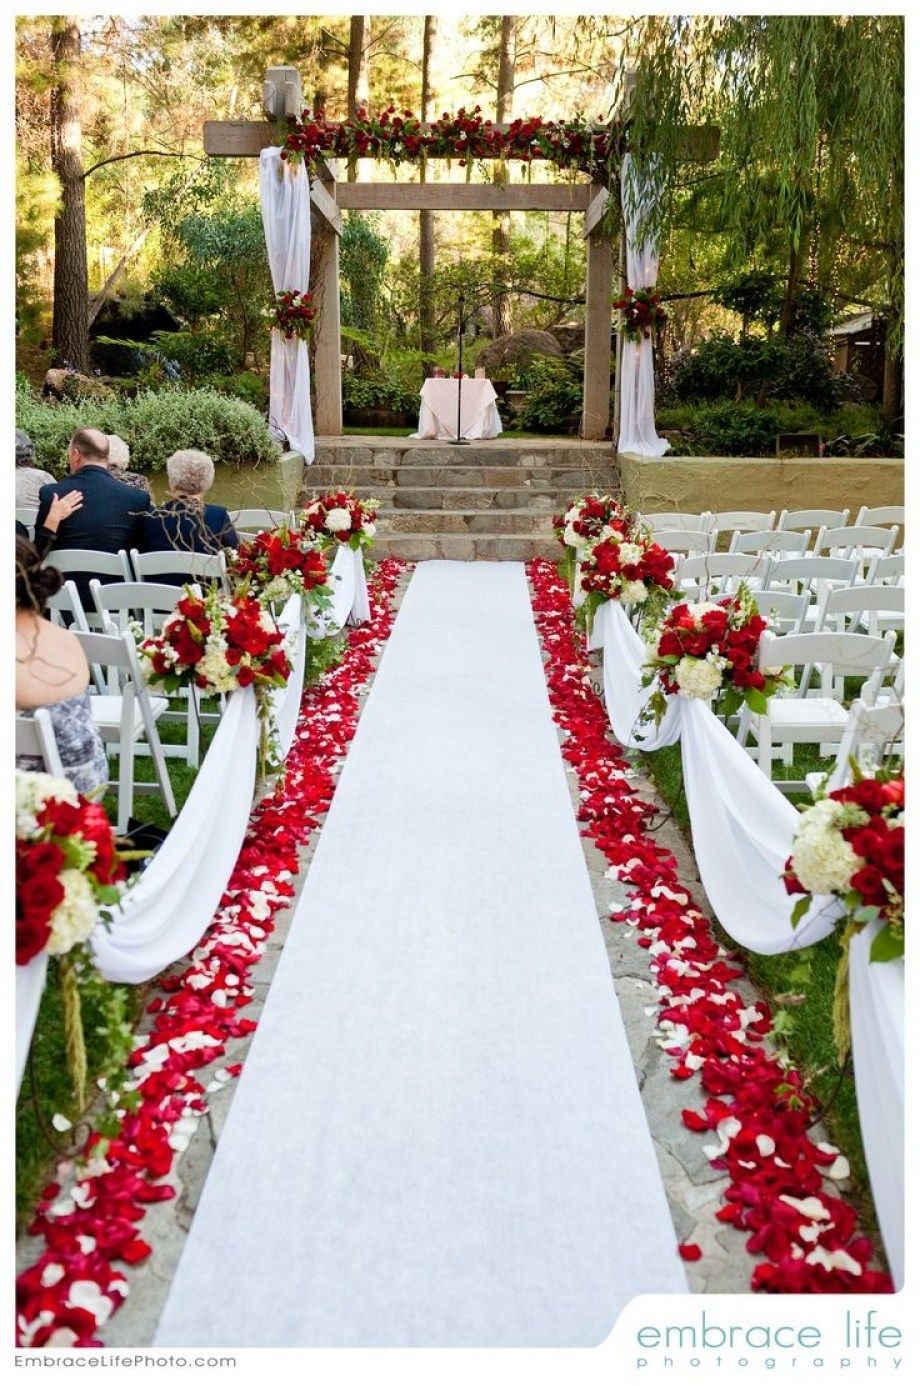 31 Stunning Maroon And Silver Wedding Decorations - Best Inspiration |  White wedding decorations, Wedding aisle decorations, White wedding ceremony